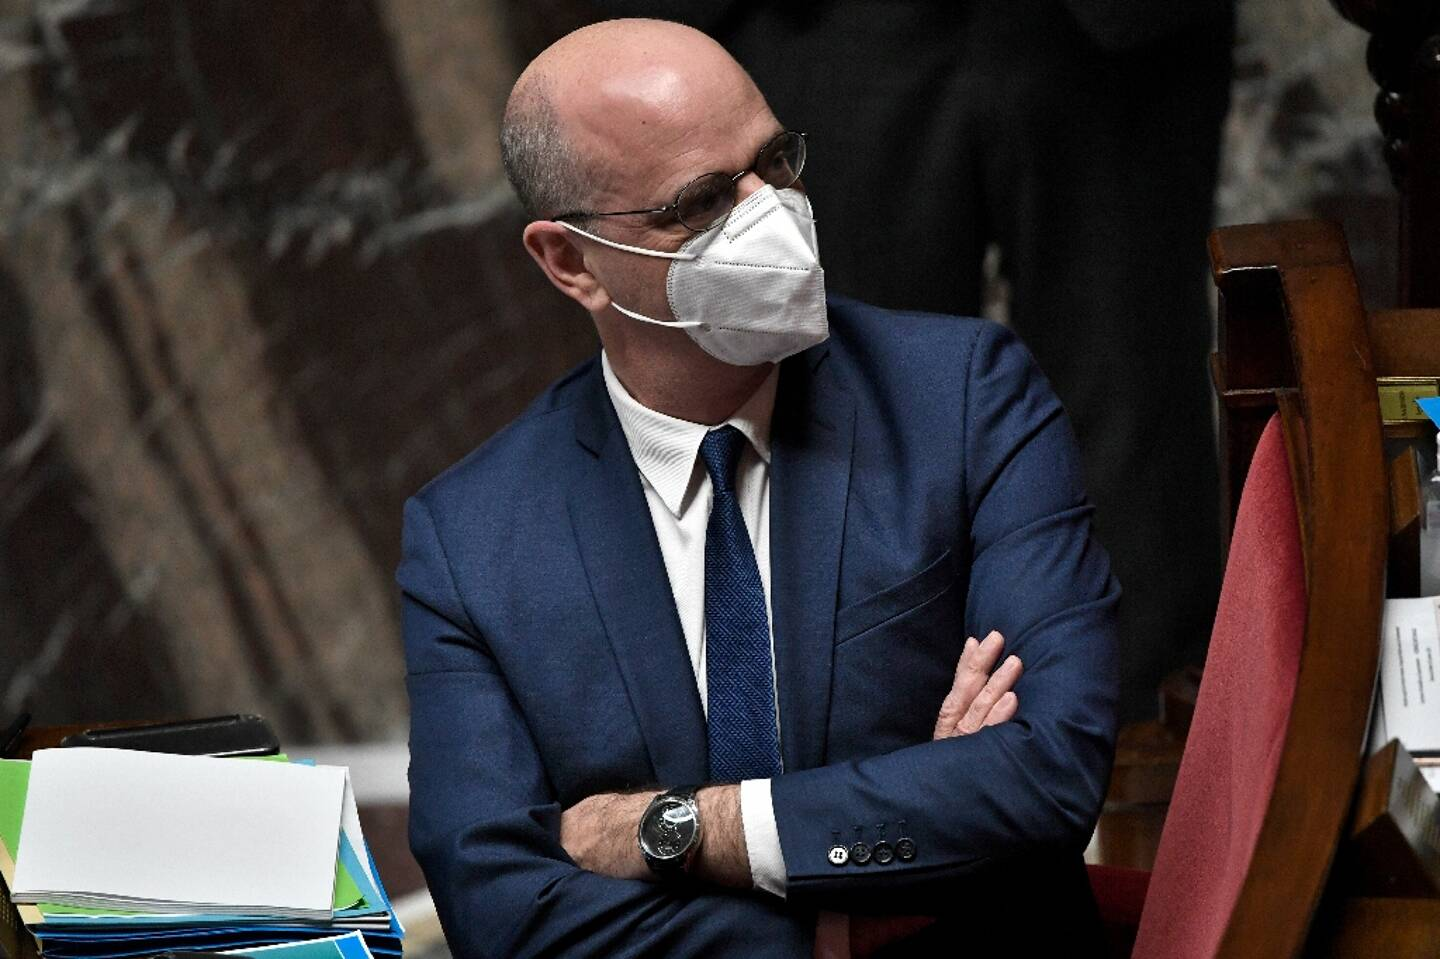 Le ministre de l'Education Jean-Michel Blanquer à l'Assemblée nationale à Paris le 19 janvier 2021